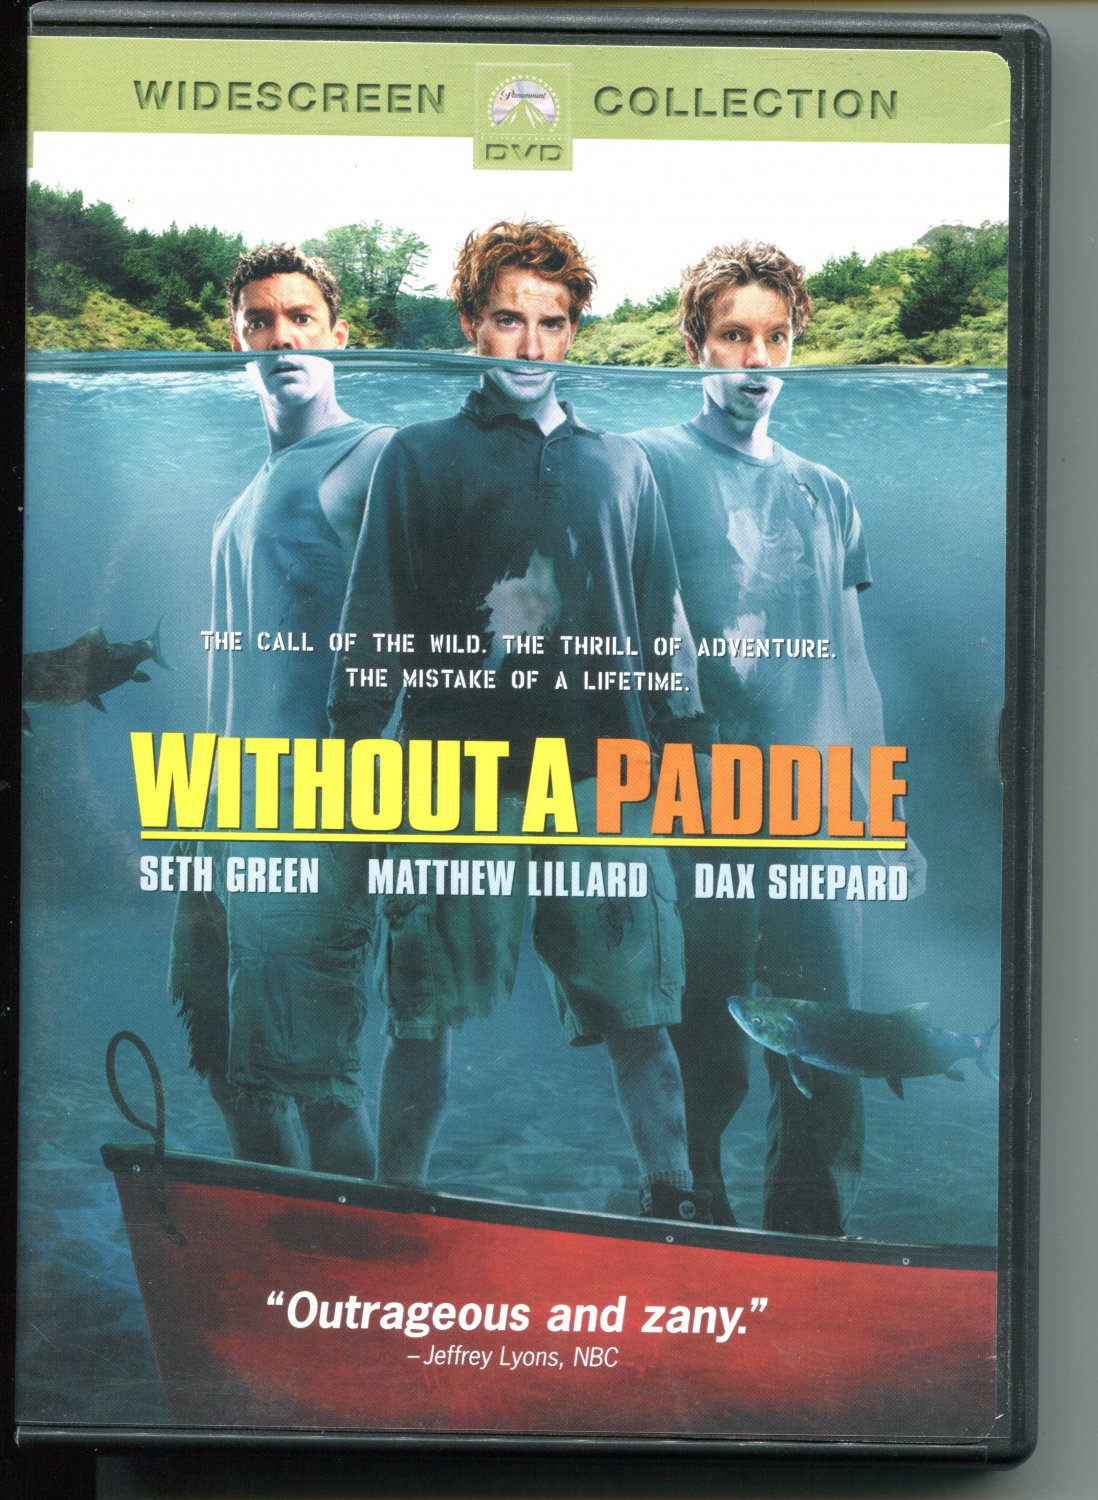 Without A Paddle (DVD 2005, Widescreen Collection)